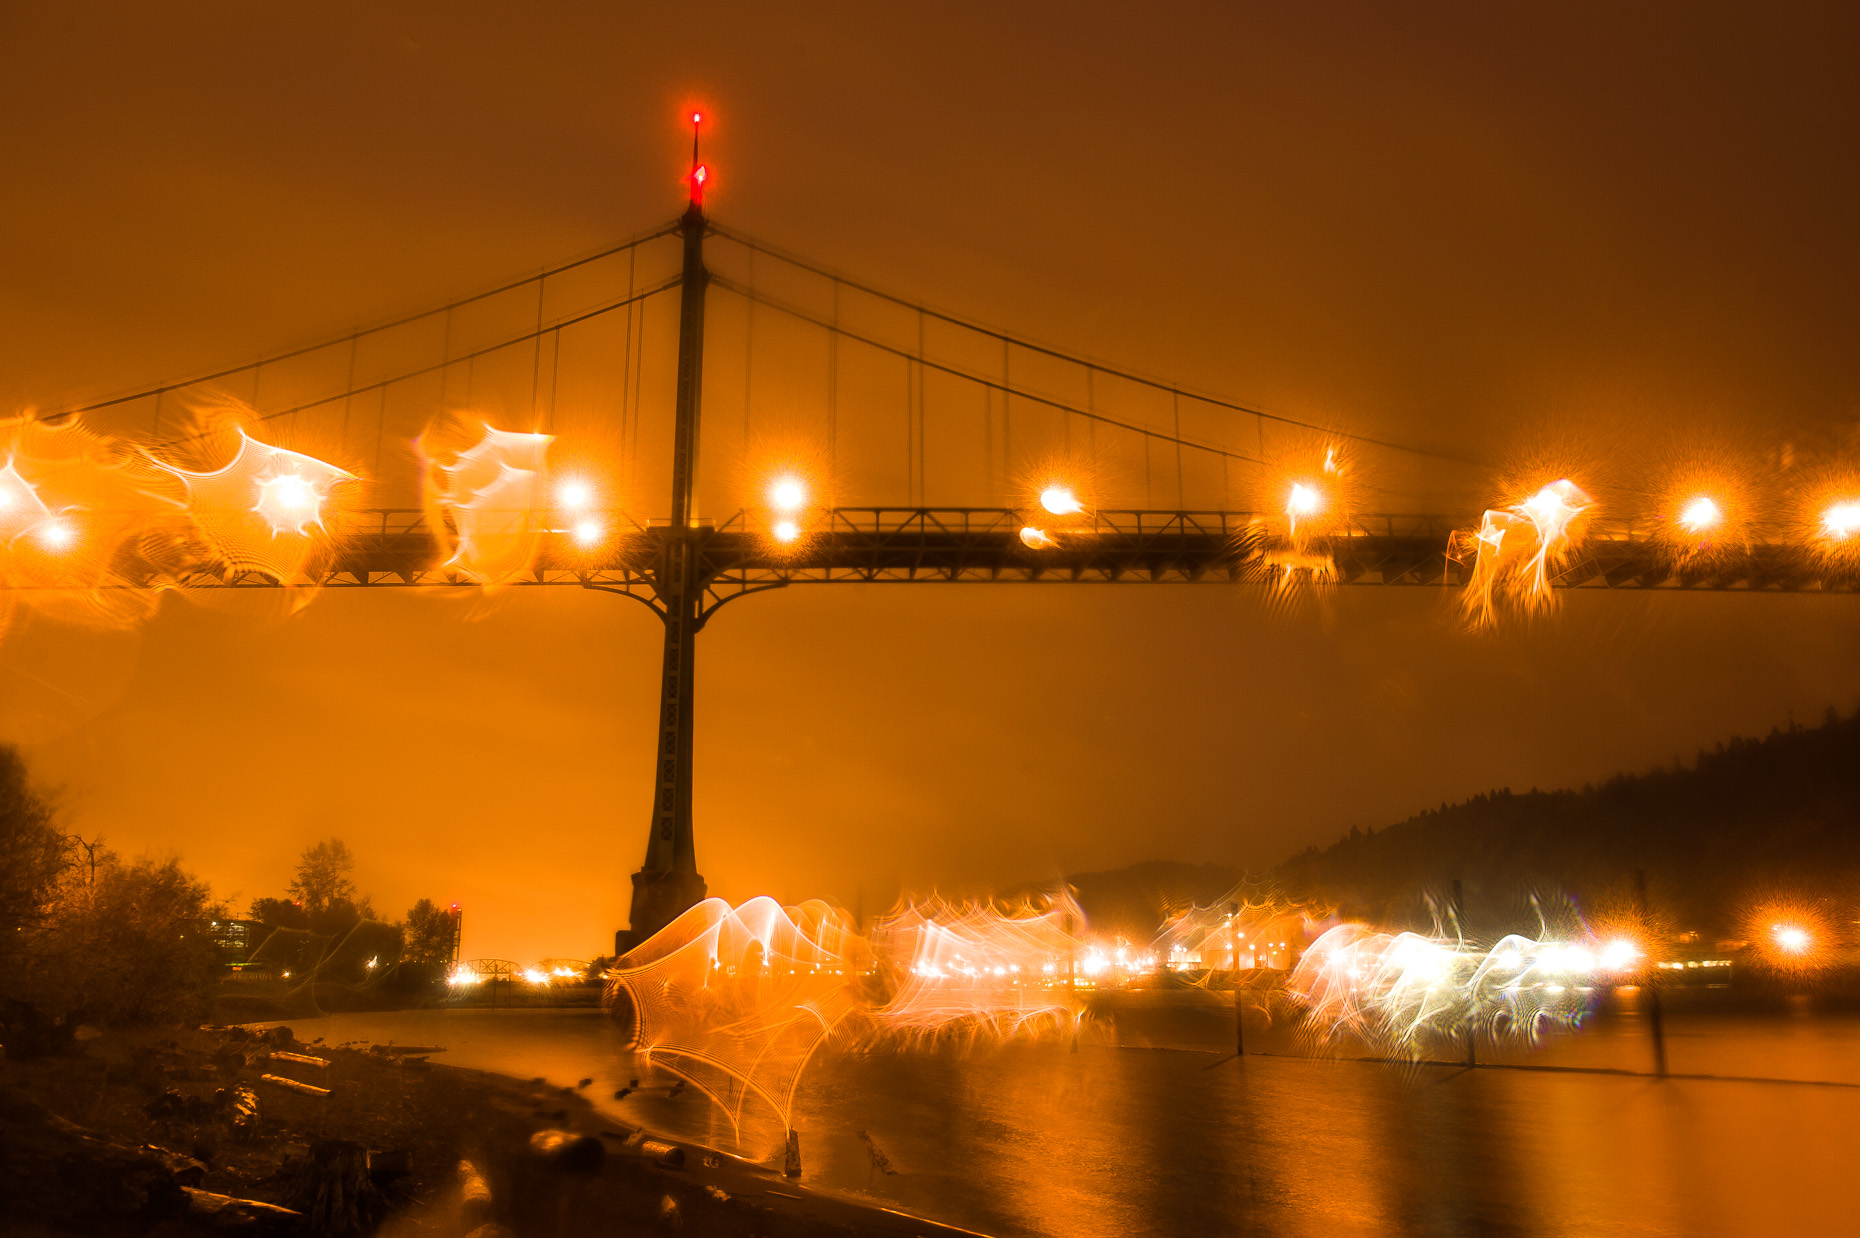 Night image of St. Johns Bridge with orange bridge lights, rain drops, Oregon.